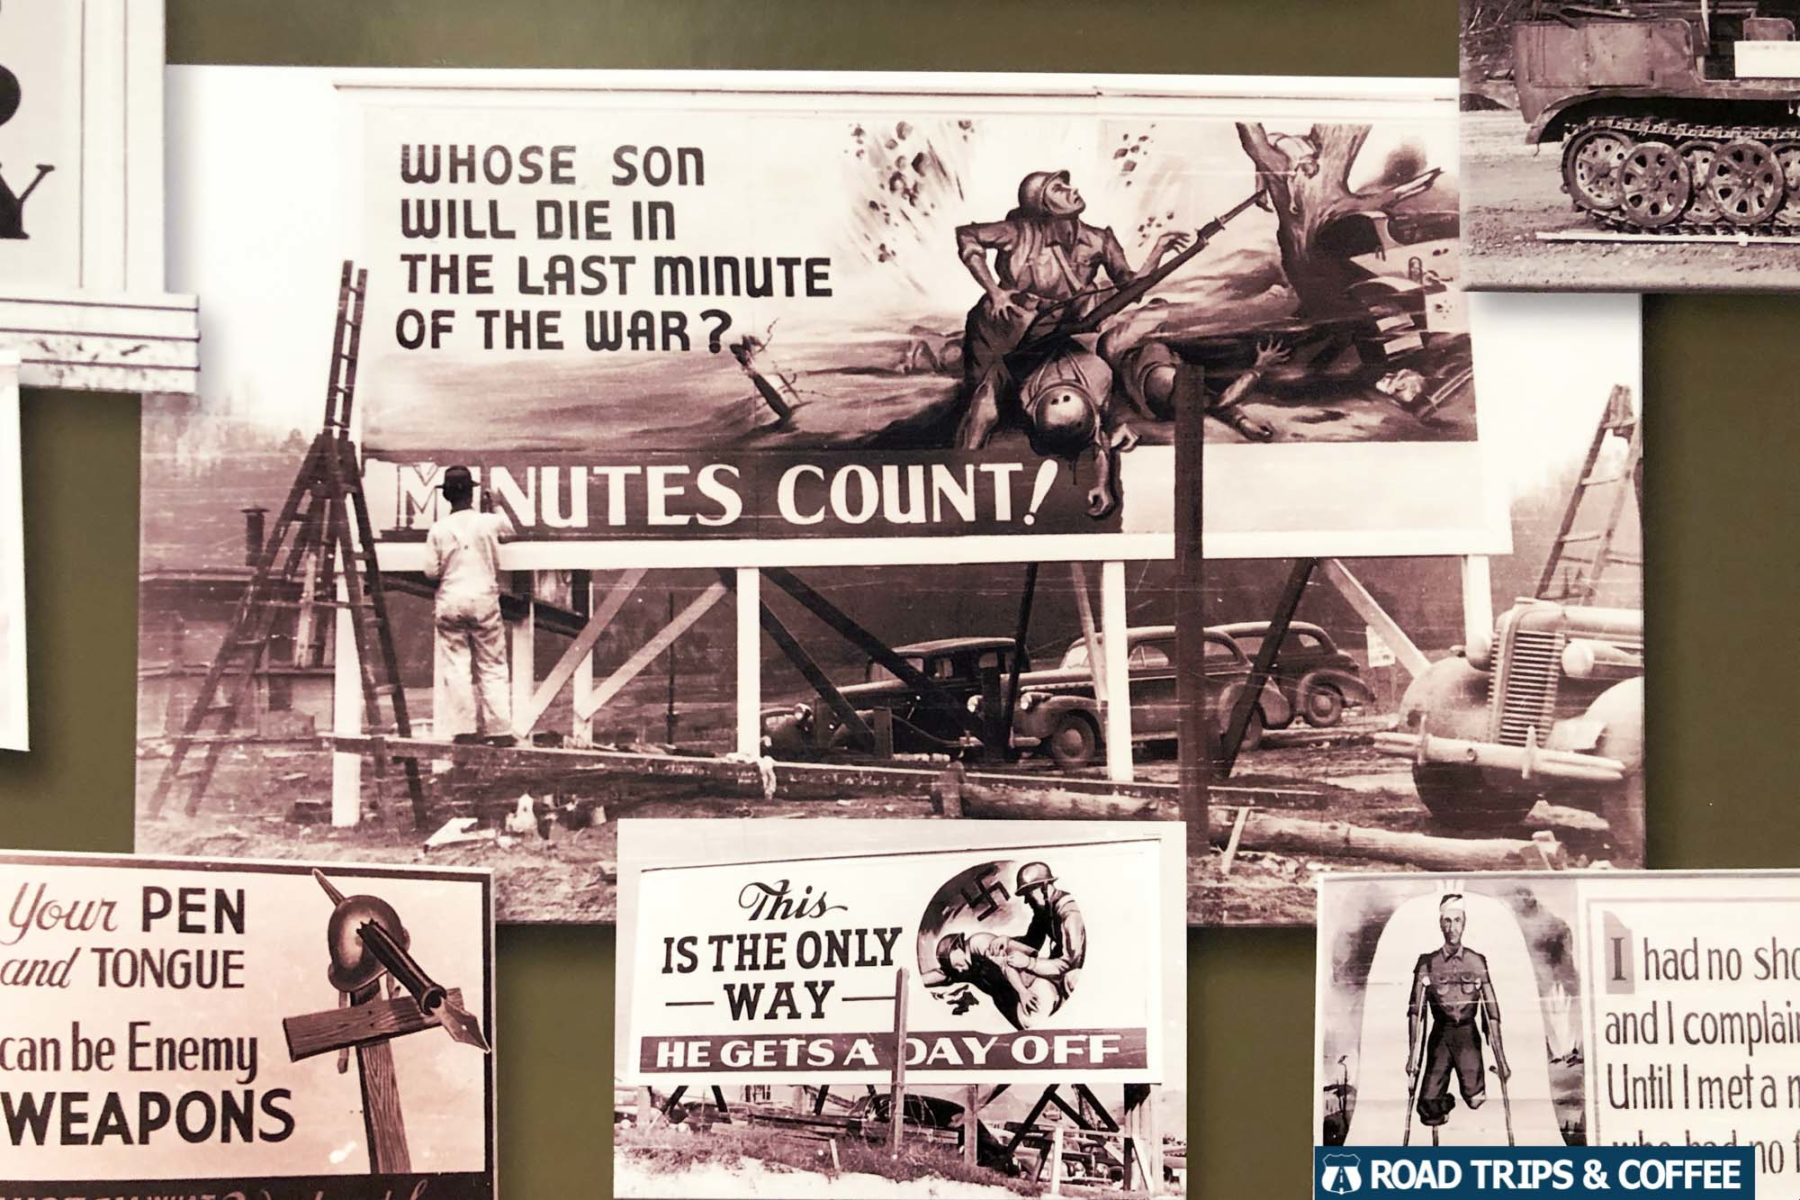 Photos of previous billboards hanging around the Secret City on display at the Oak Ridge Museum in Oak Ridge, Tennessee